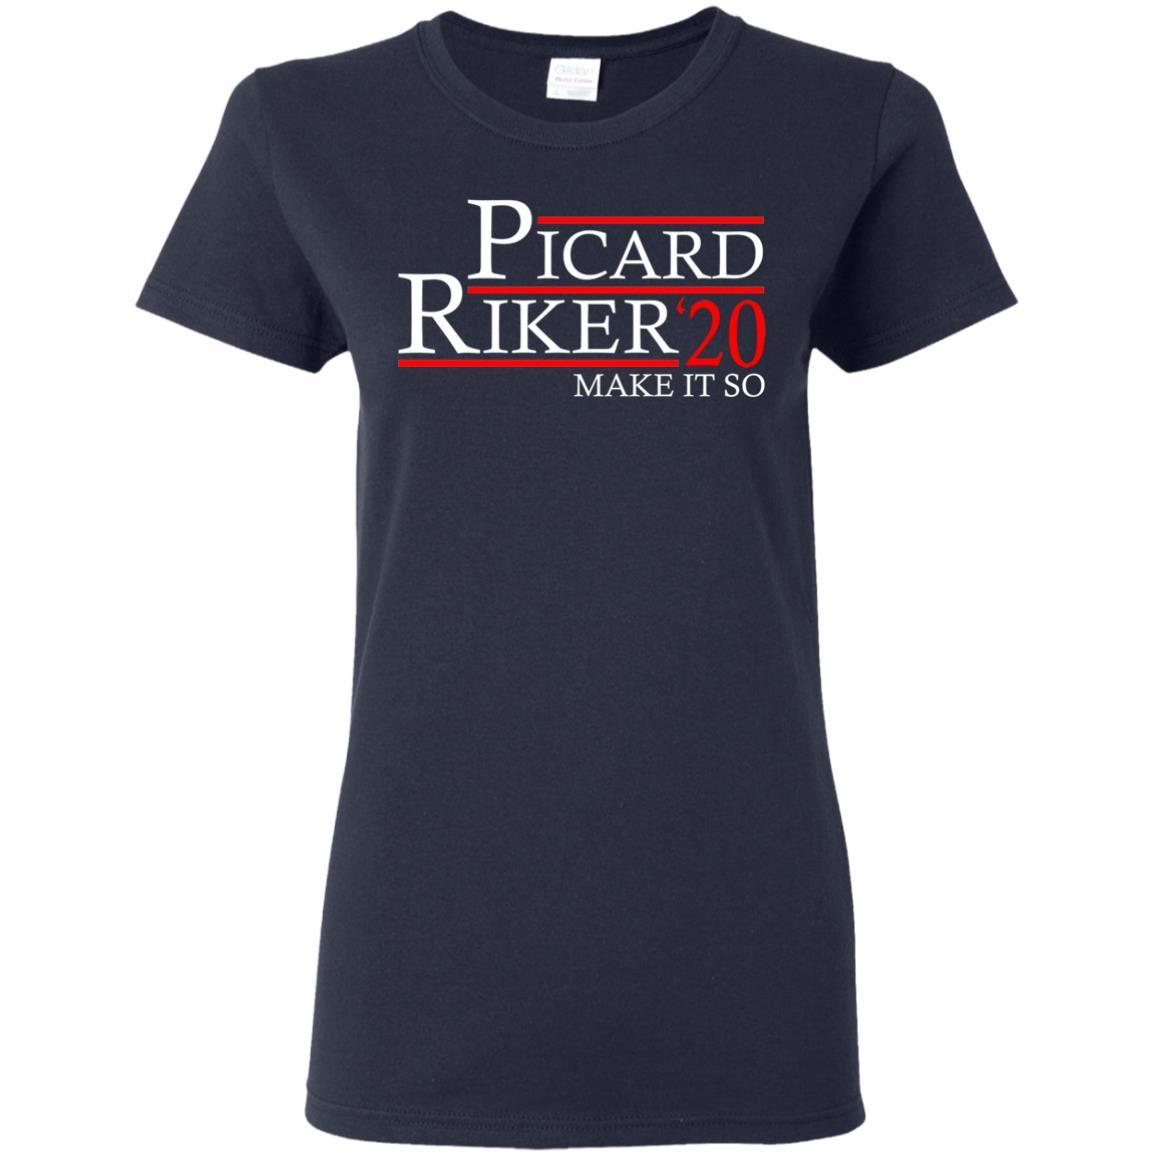 T-Shirts - Picard Riker 2020 Ladies Tee